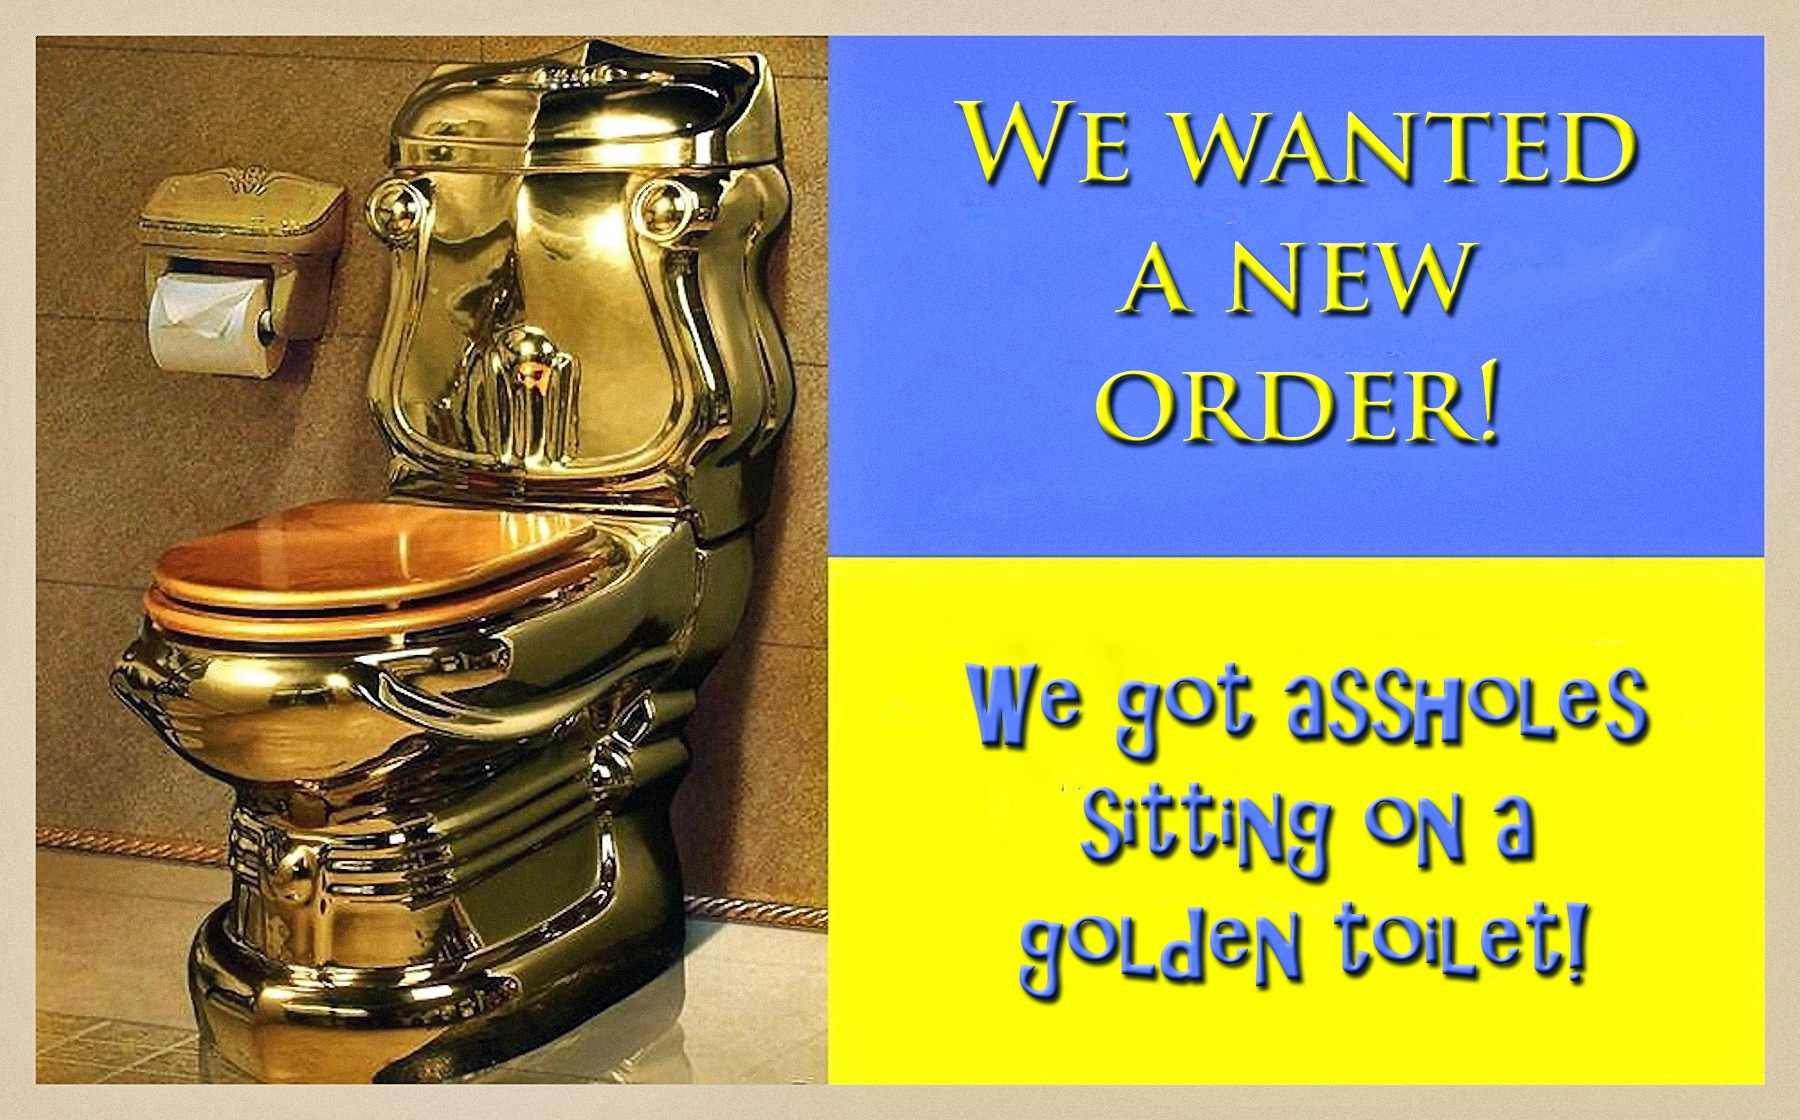 00 assholes on a golden toilet ukraine 301015